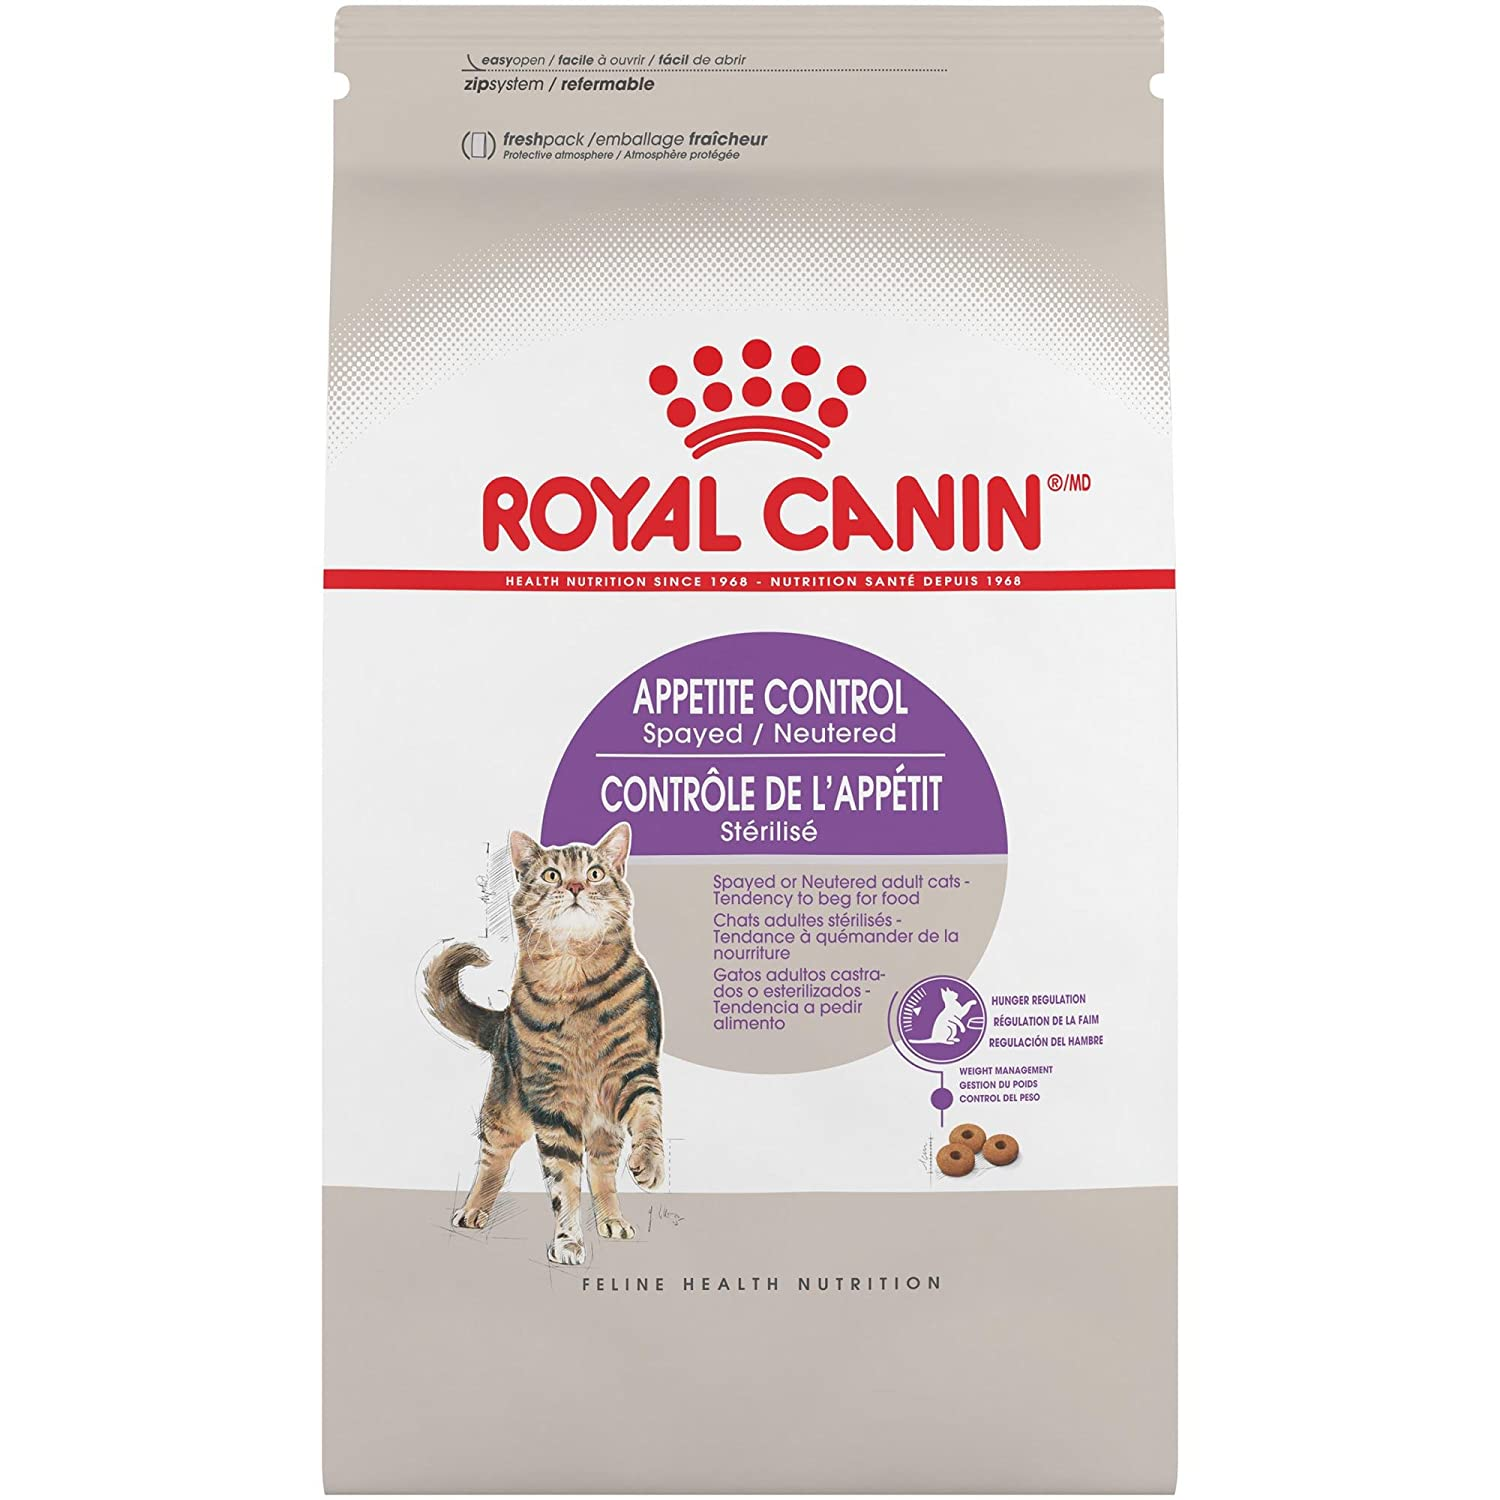 2.5-Pound Royal Canin Feline Health Nutrition Spayed Neutered Appetite Control Dry Cat Food, 2.5-Pound